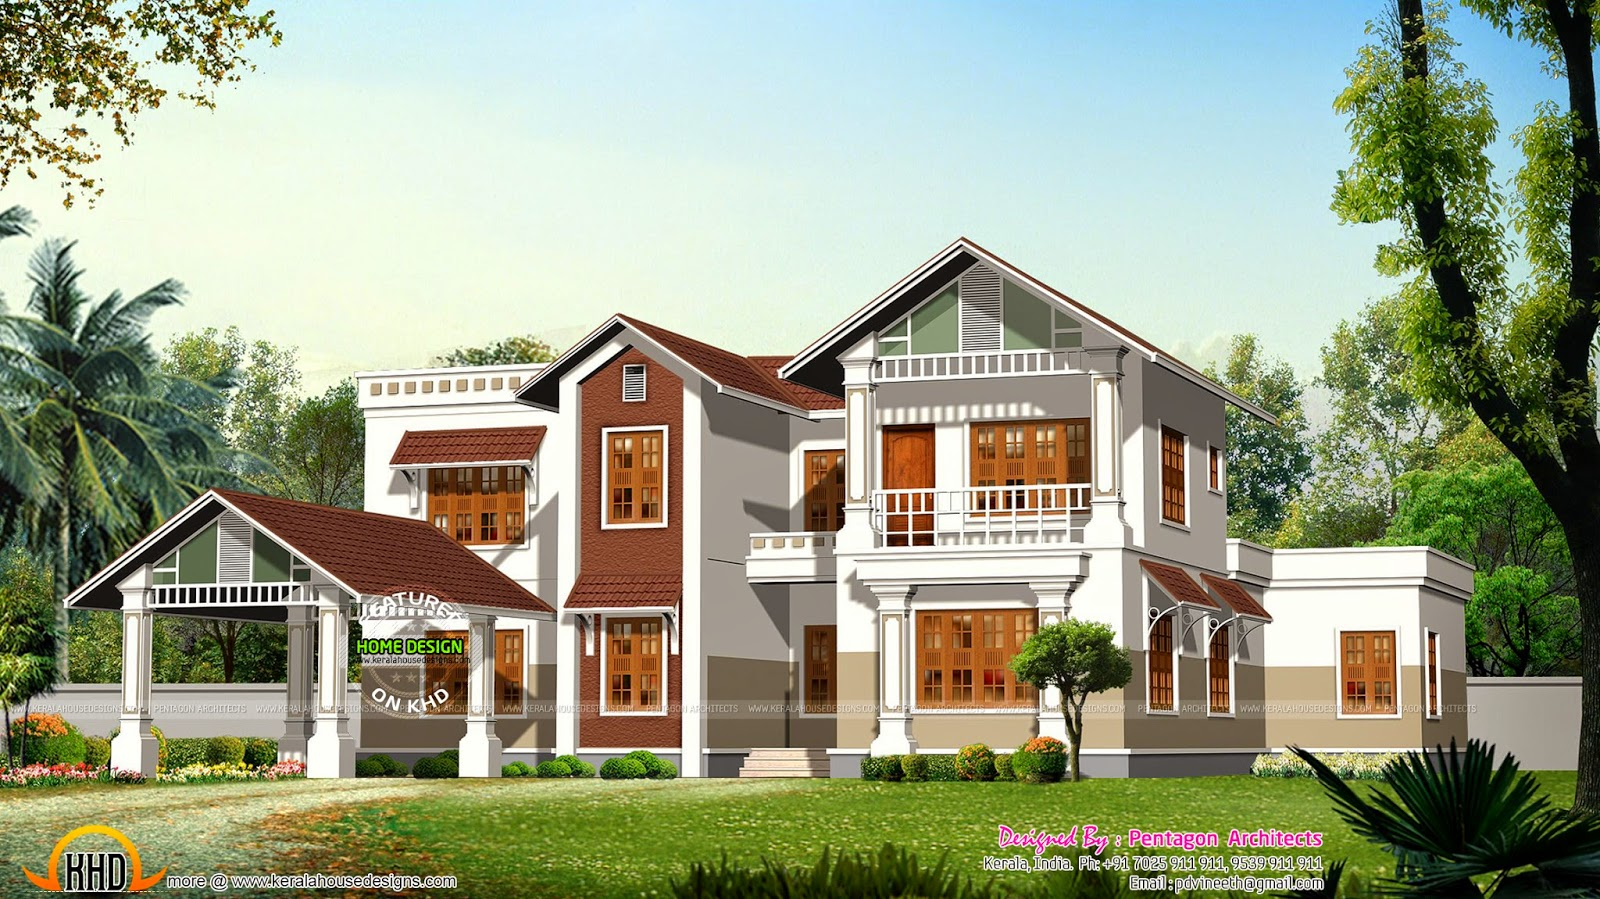 Kerala house plans set part 2 kerala home design and for House plan set